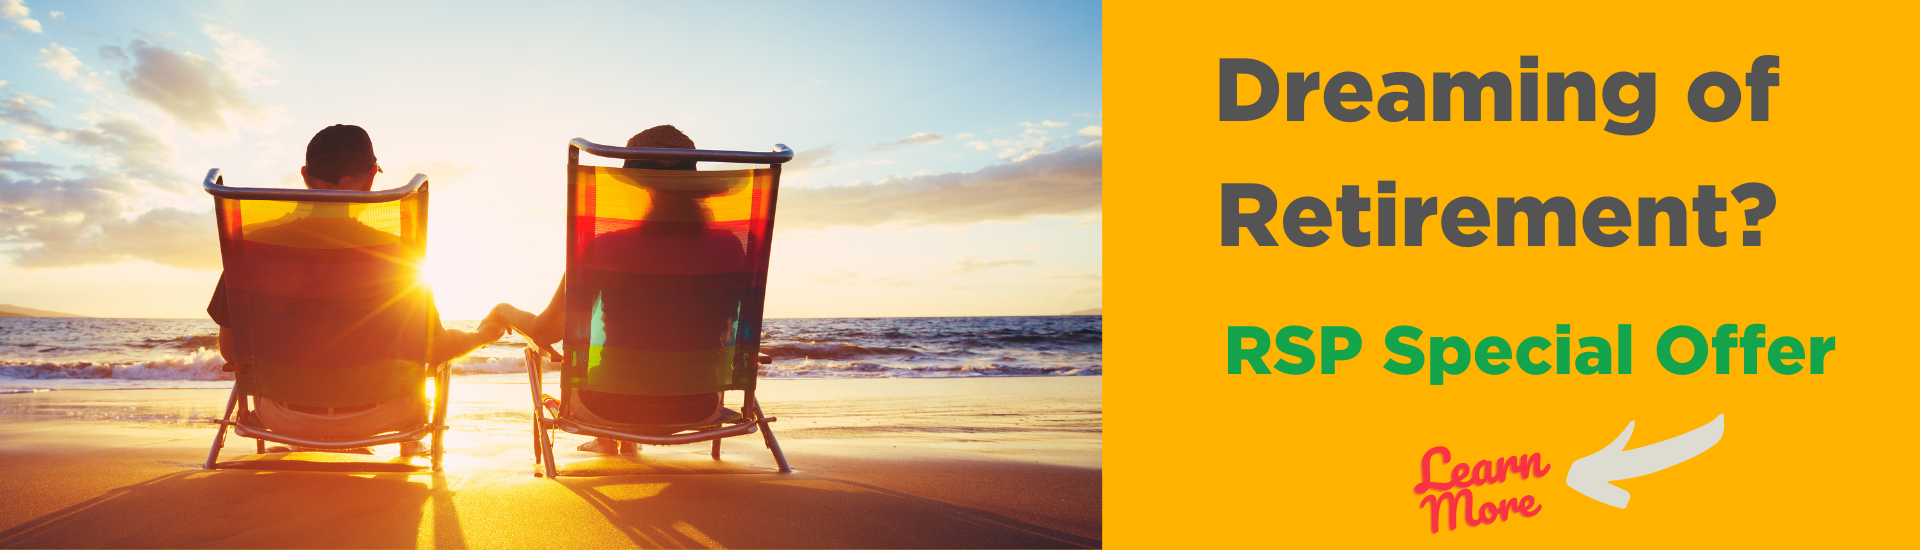 Dreaming of retirement? RSP special offer